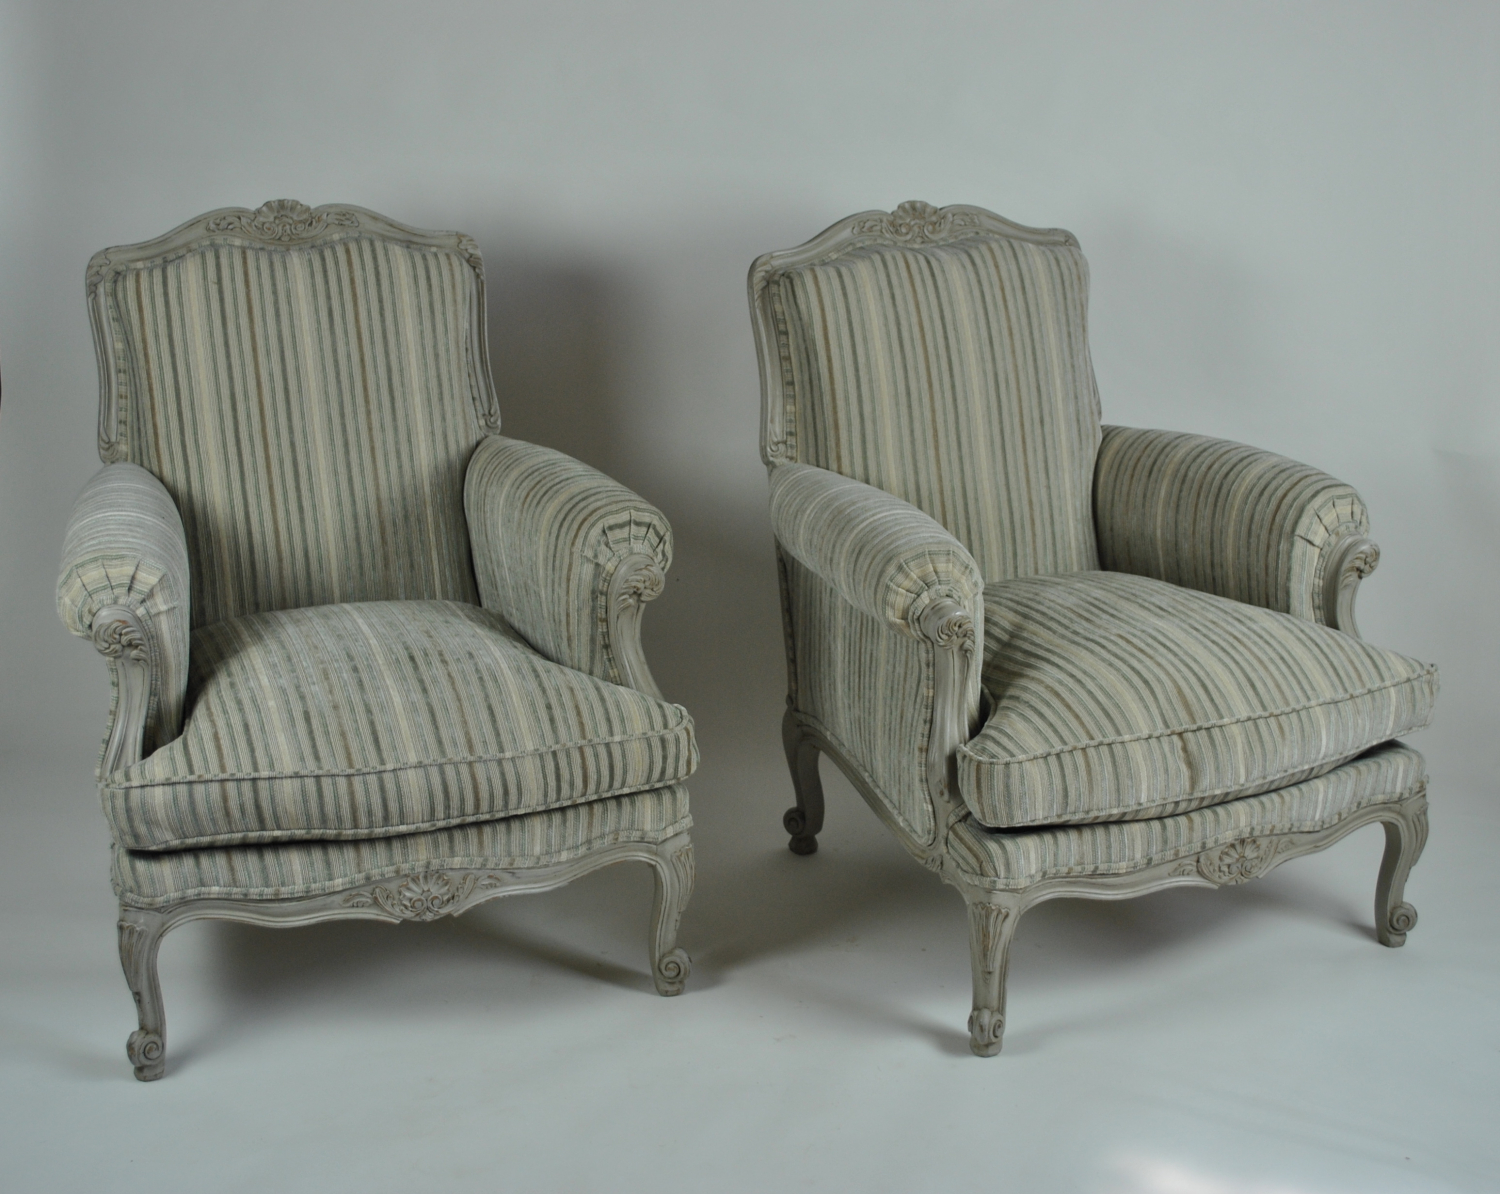 Louis style painted Chairs